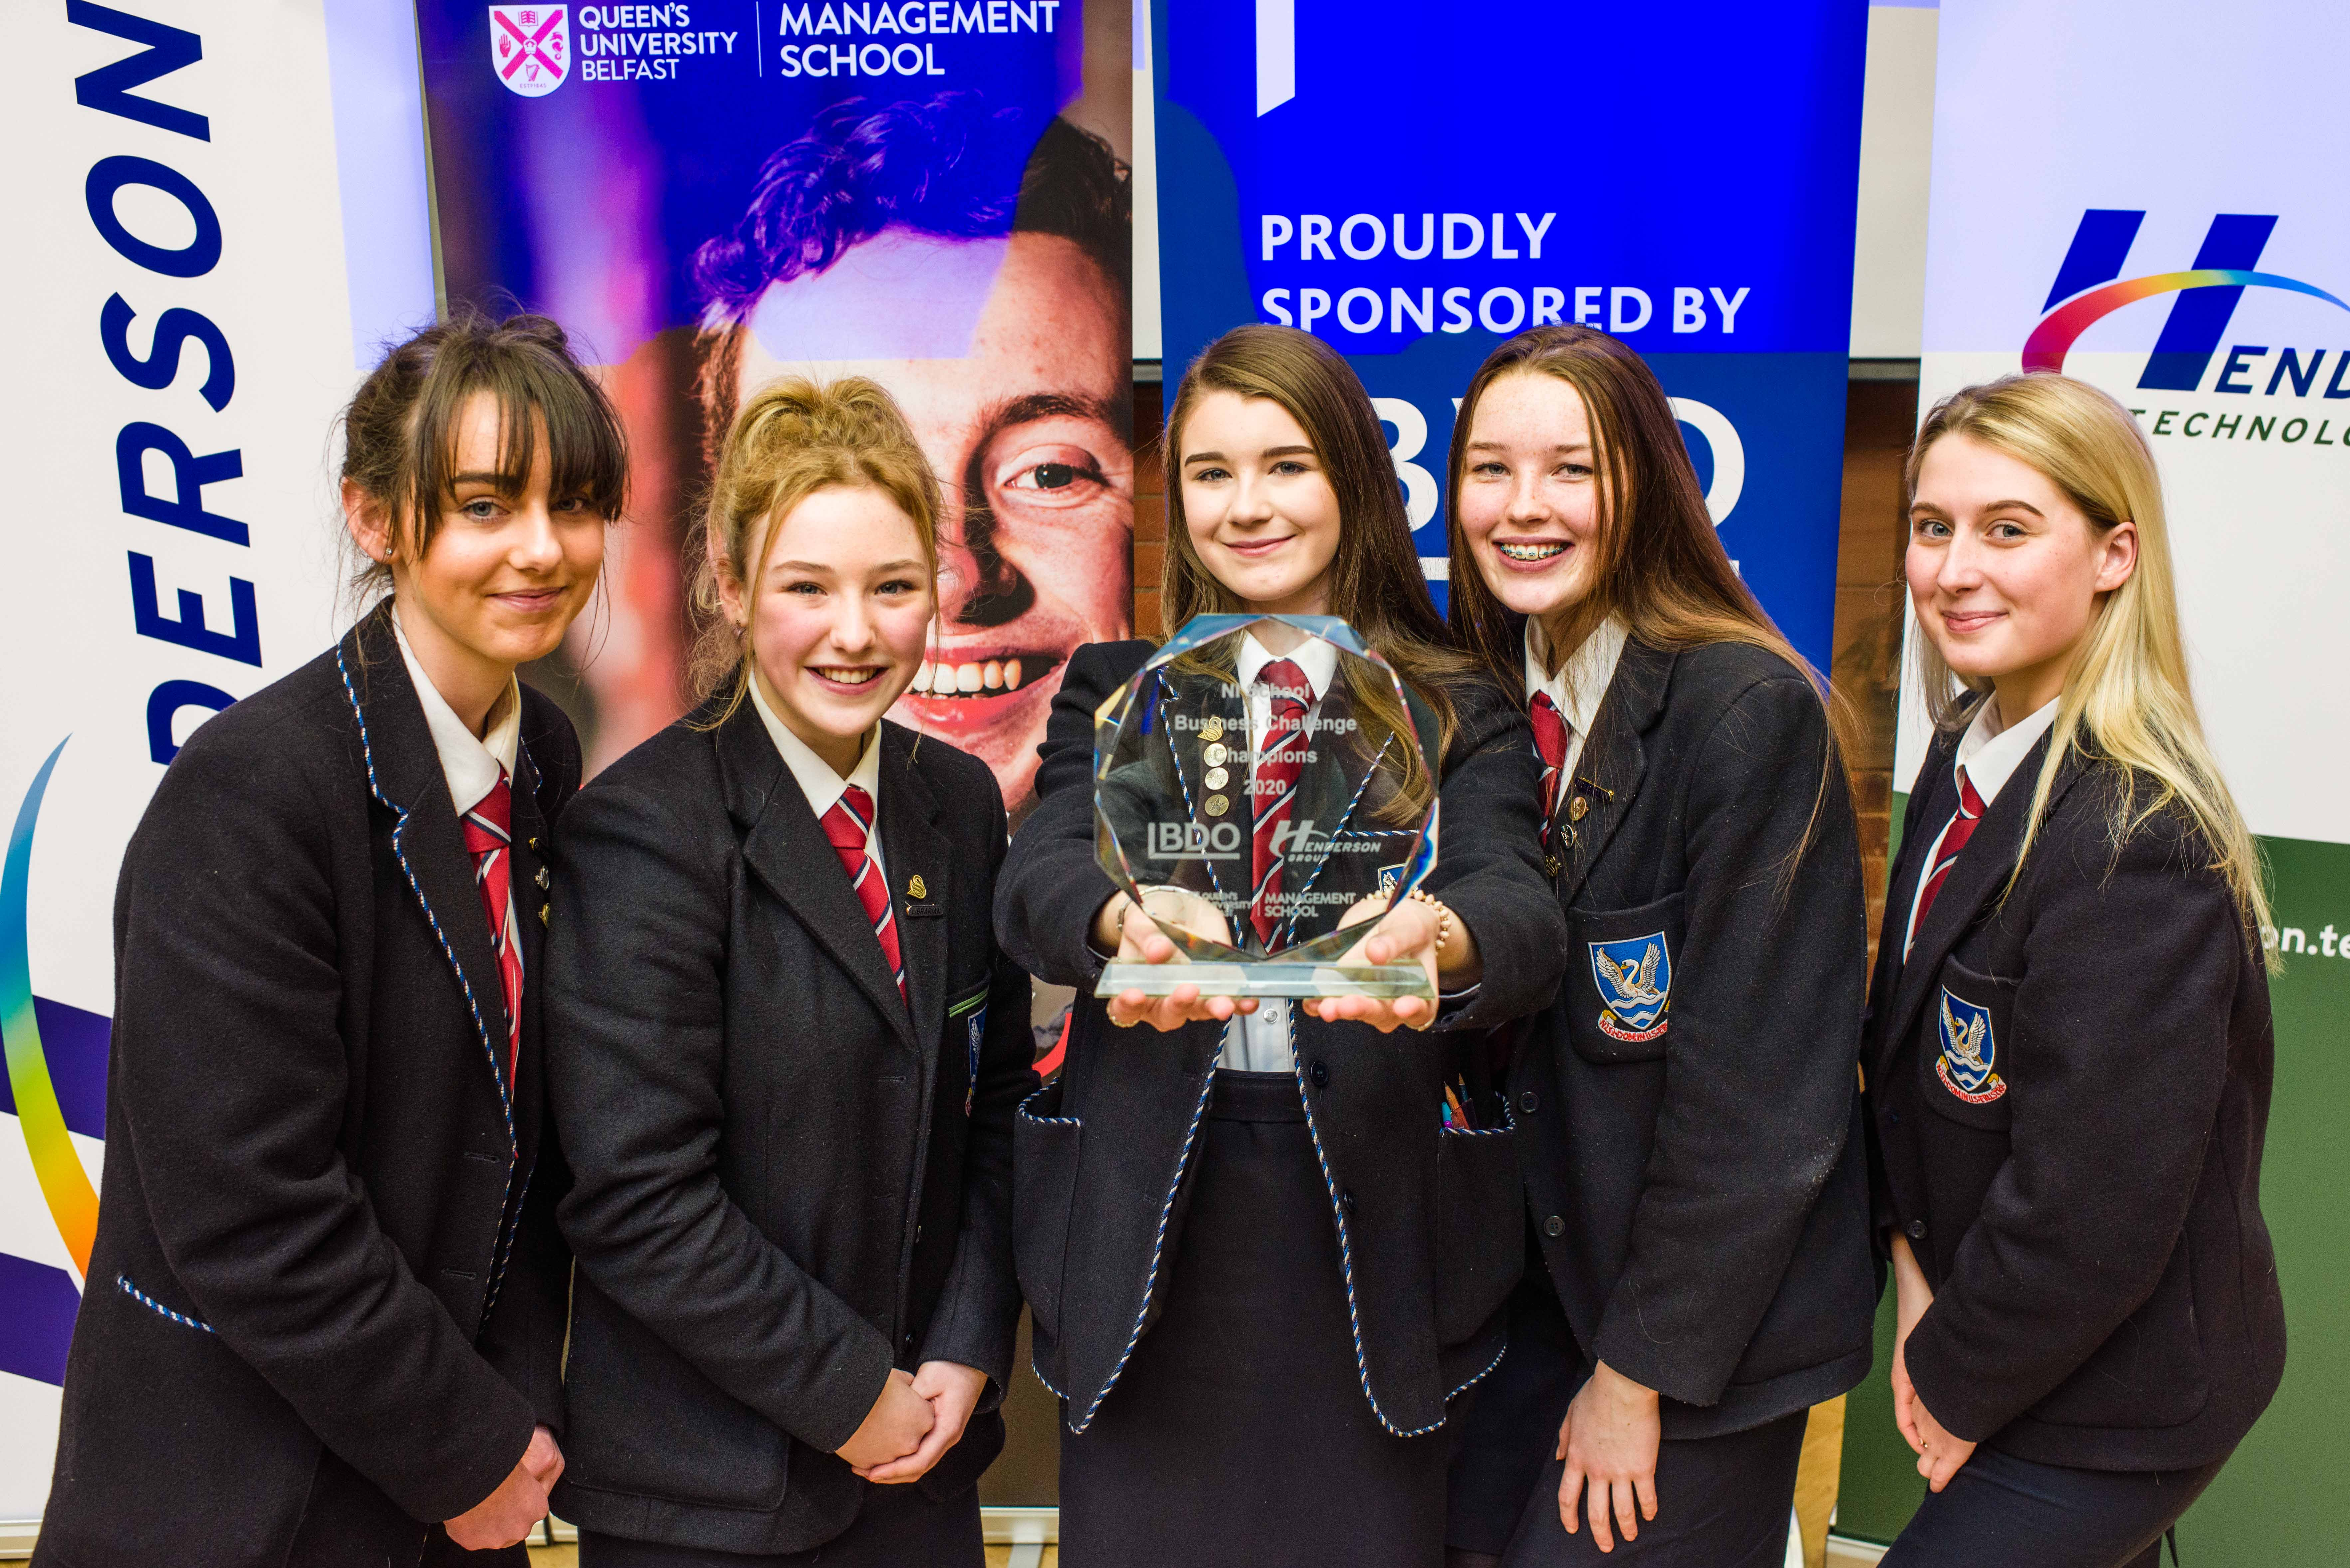 Bangor pupils claim victory at the NI Schools Business Challenge